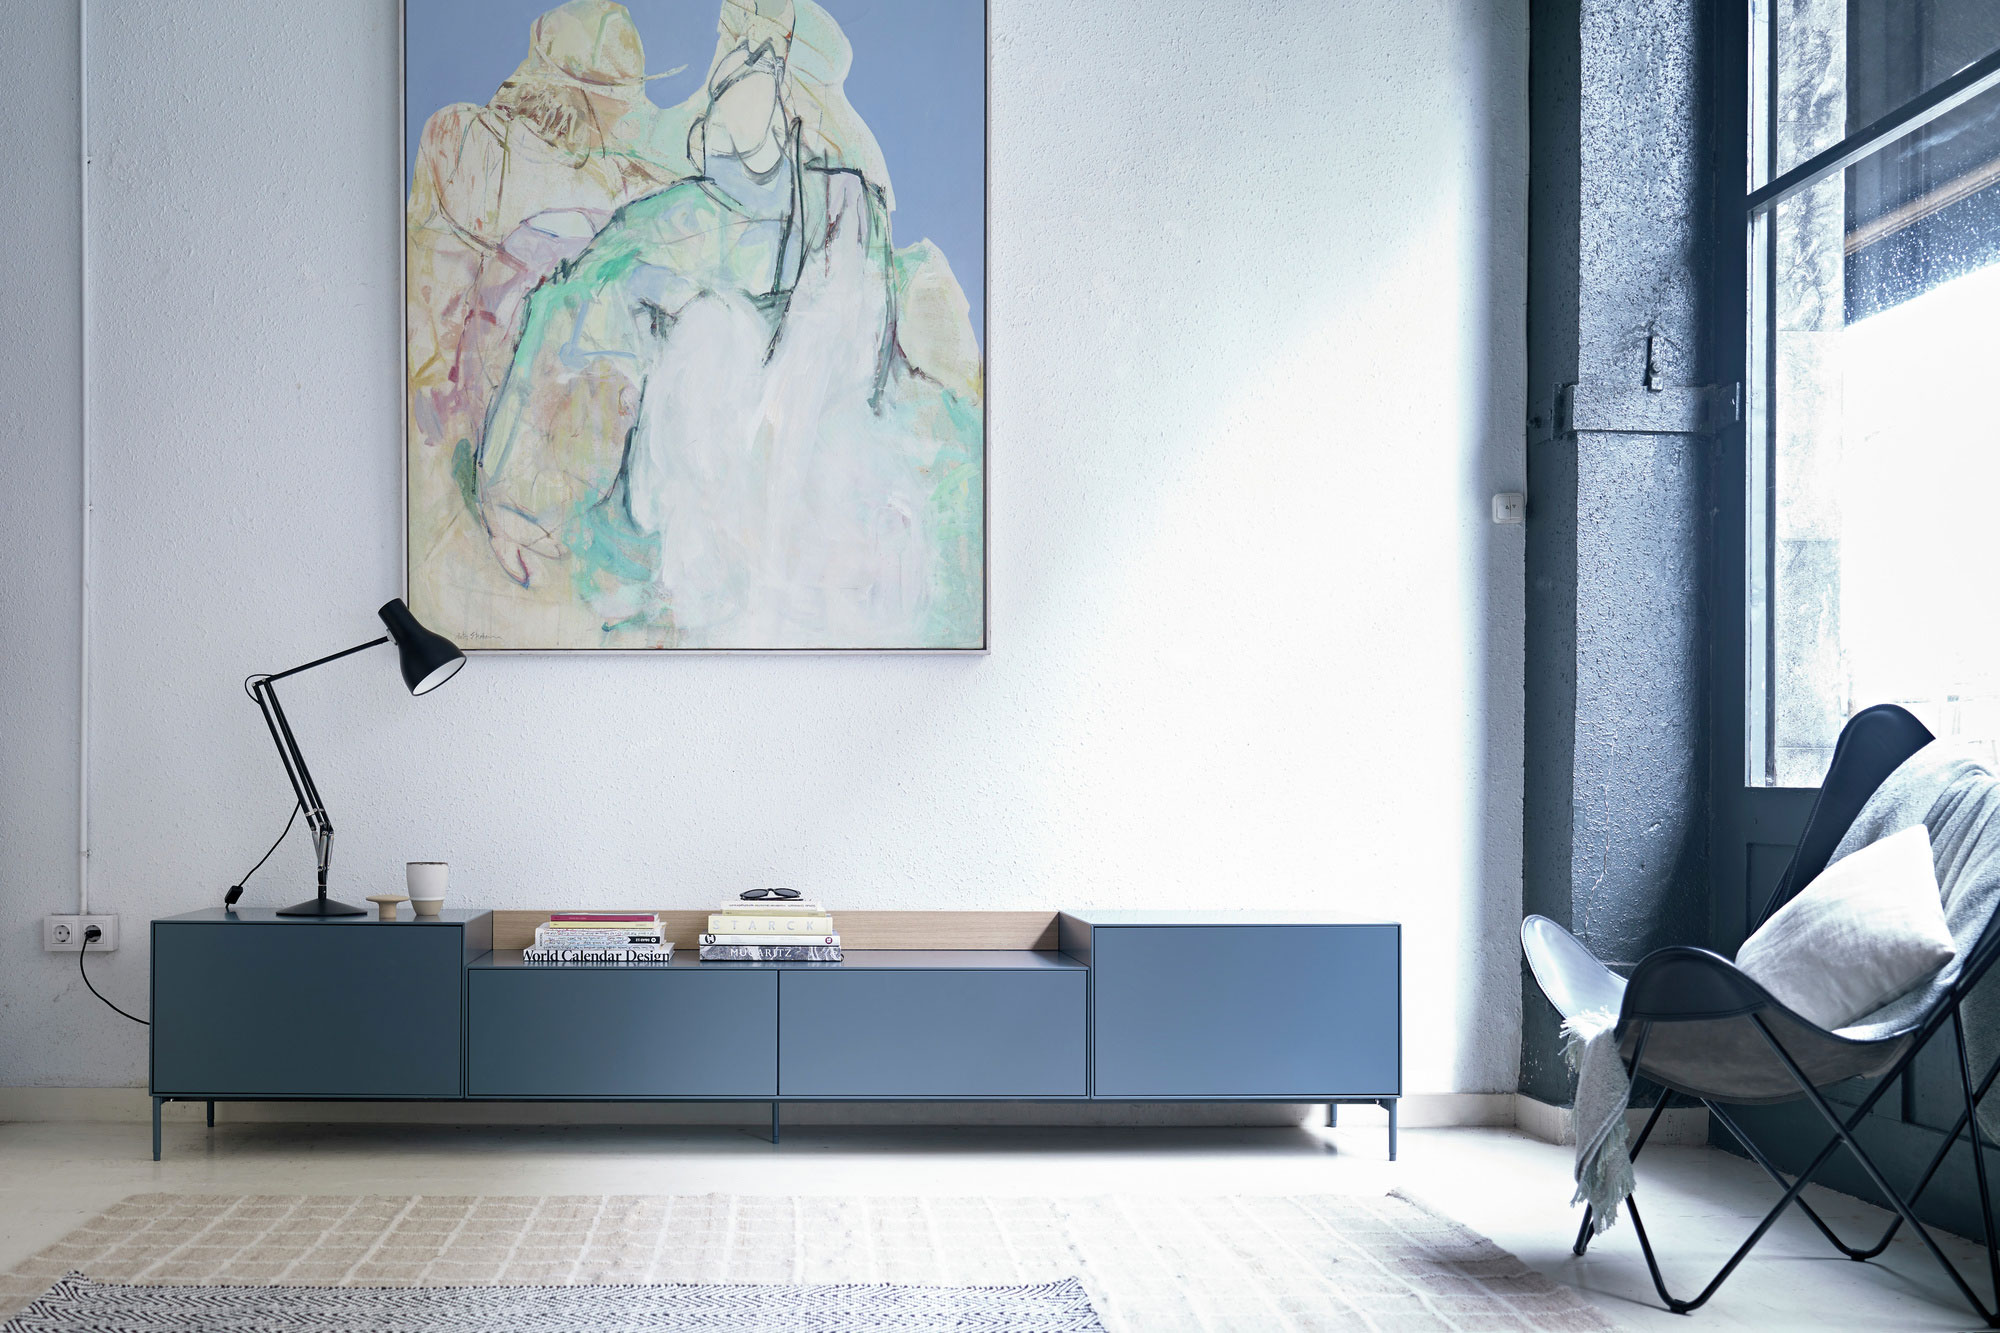 LAUKI sideboard by Ibon Arrizabalaga for Treku. Photo: Courtesy of Treku.